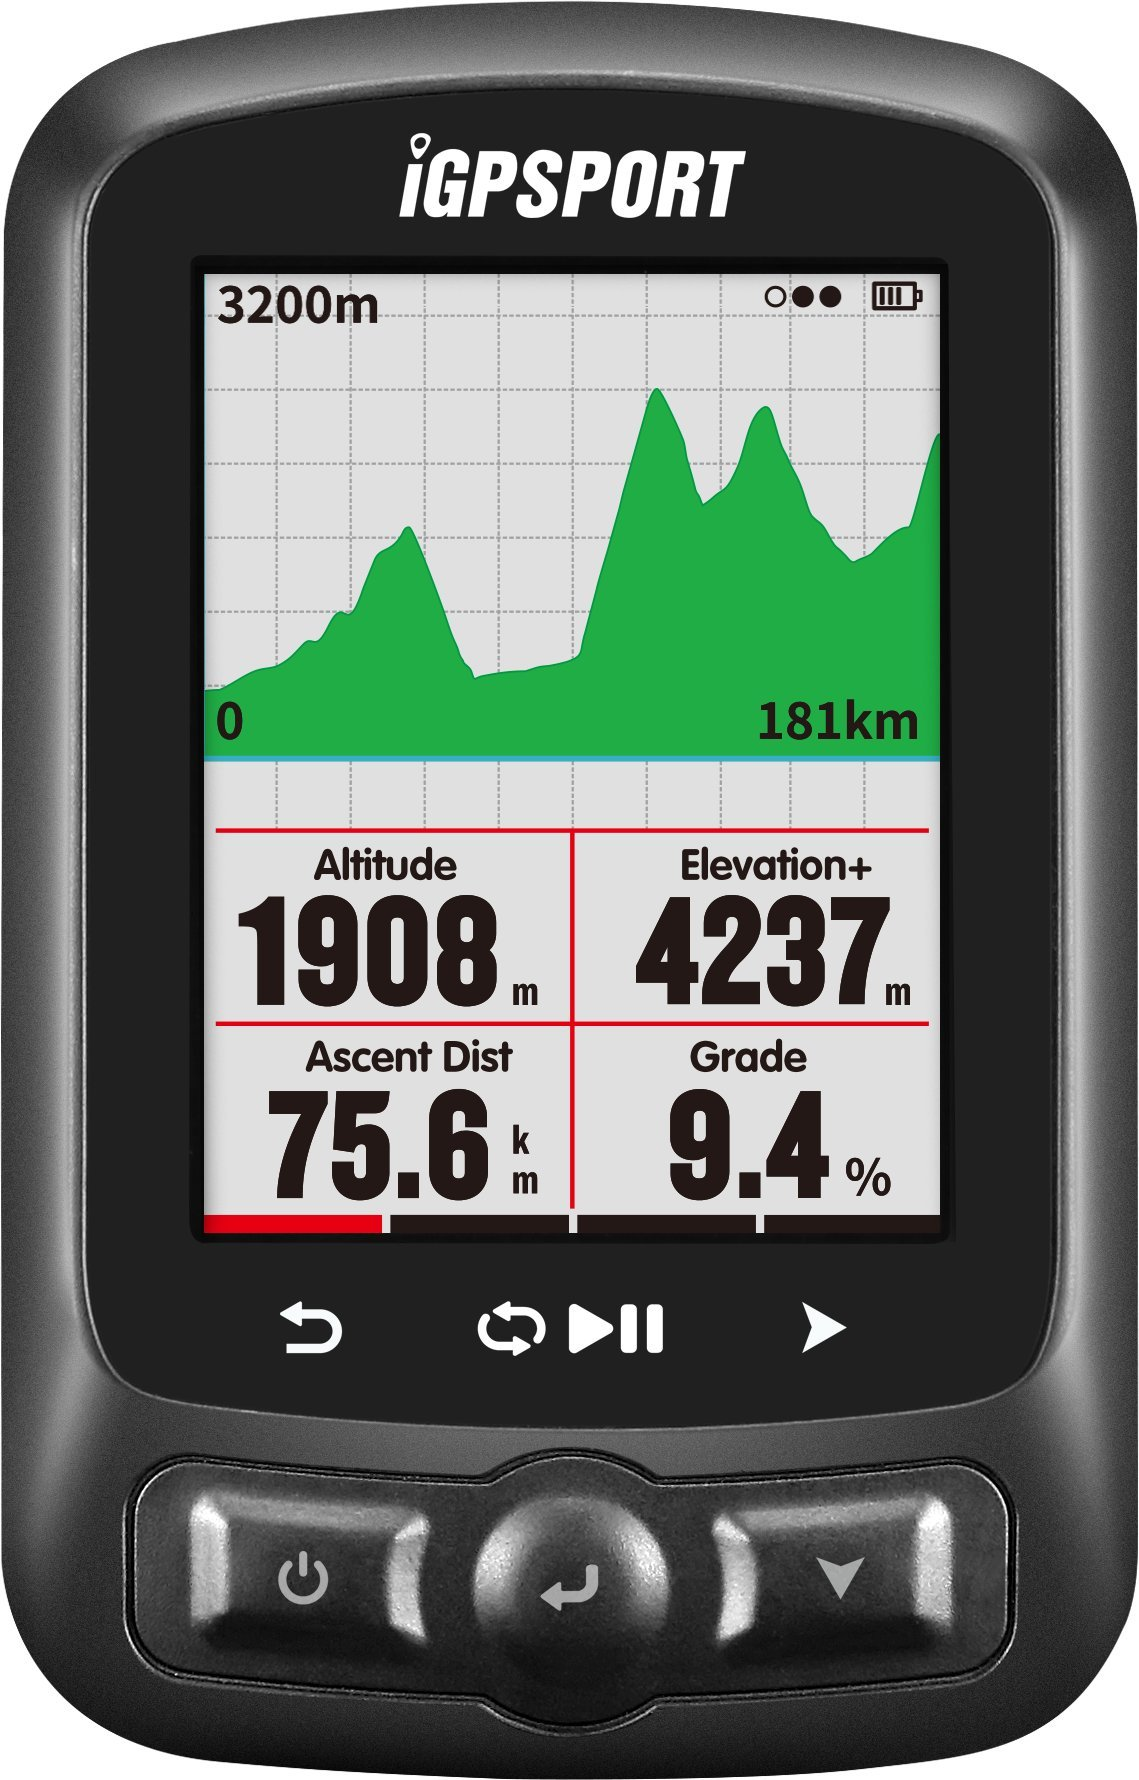 iGPSPORT GPS Bike Computer ANT+ Function iGS618 Cycle Computer with Road Map Navigation Waterproof IPX7